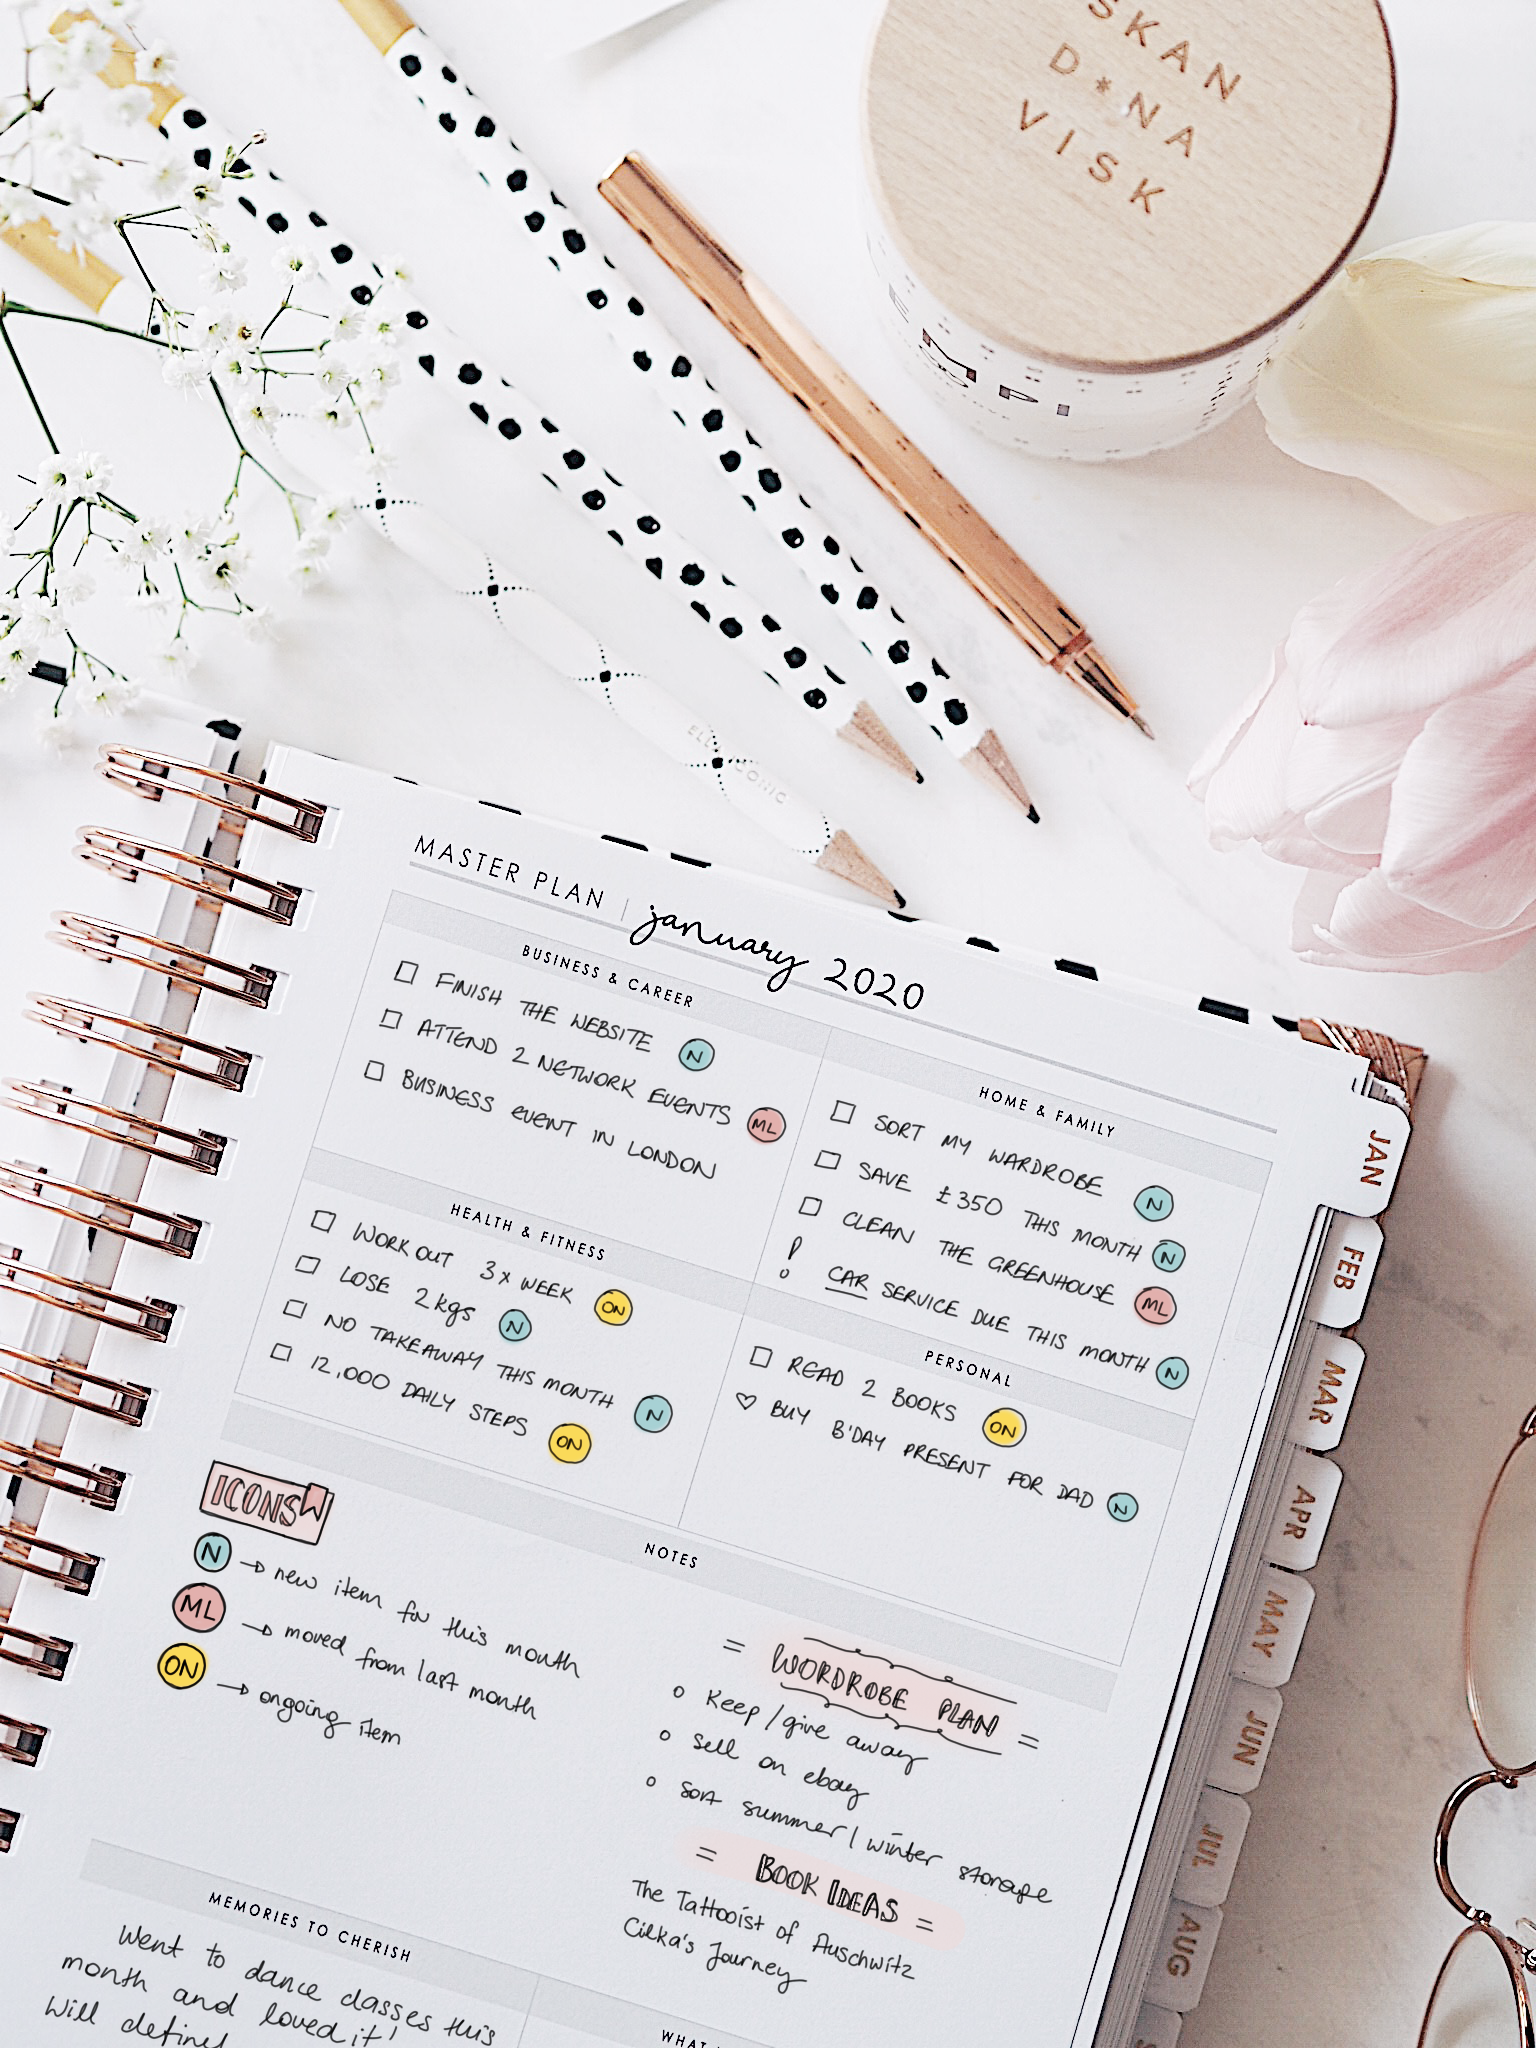 Ella Iconic Blog | Part Six | Six step monthly planning routine with CEO of My Own Life Planner